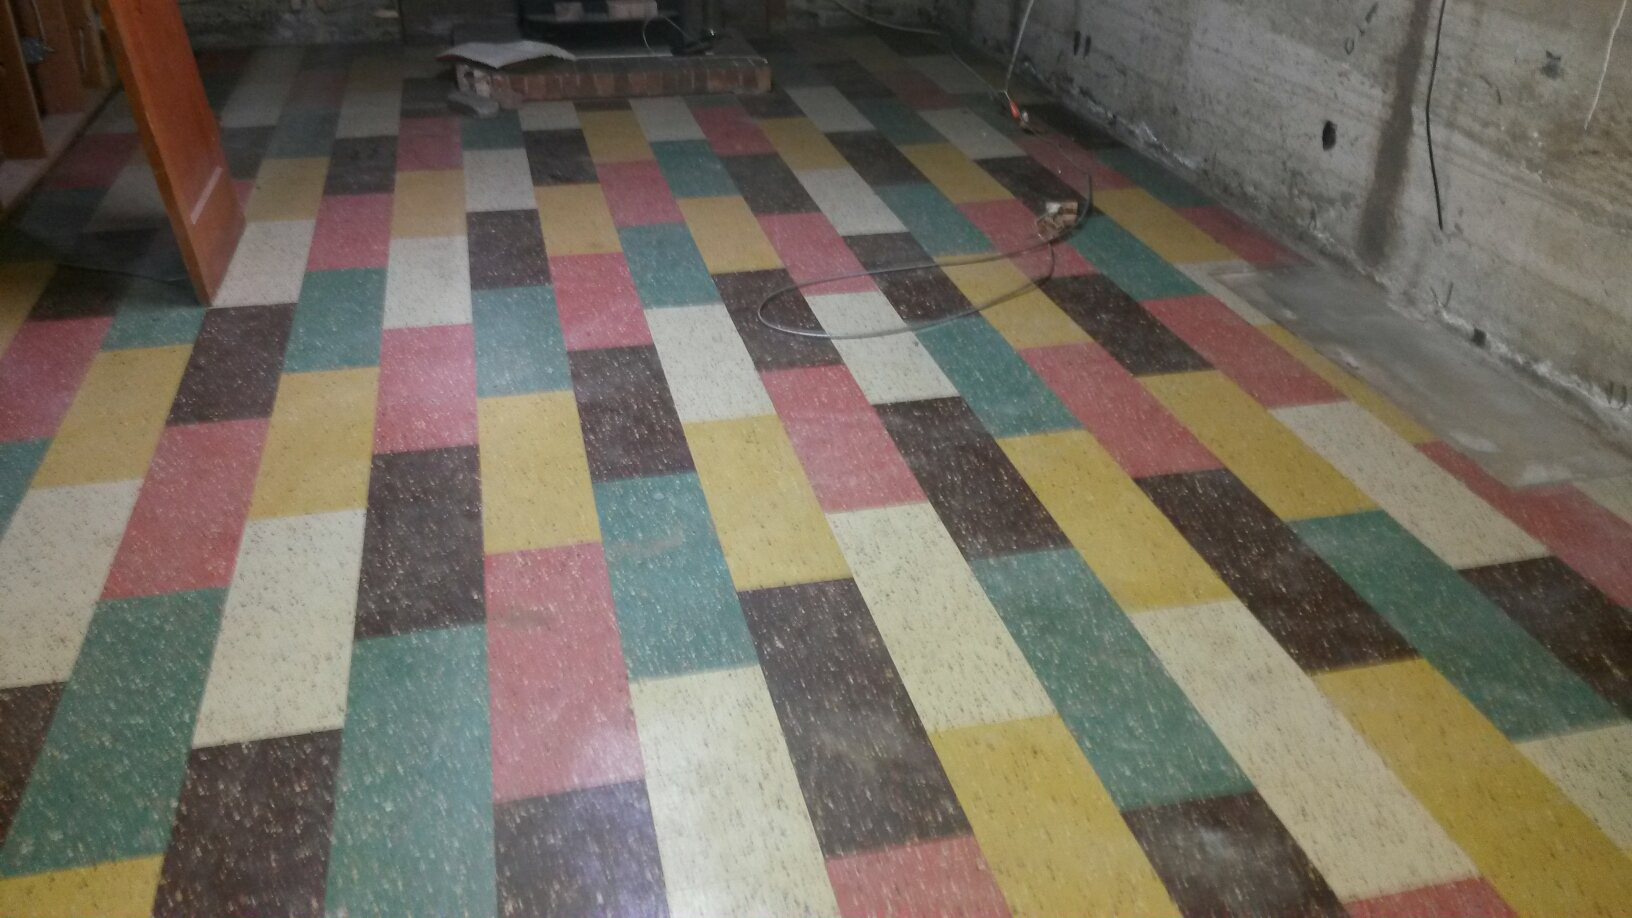 Ogden, UT - Sewage backed up and water damage cleanup in Ogden Utah. After we took out the carpet and padding we uncovered this fun VCT tile from the 1950s. It's very colorful still in pretty good shape and would have been very much in style in its day I'm sure. It is in good enough shape we were able to clean and disinfect the floor but there's other tile in the bathroom that the tiles will need to come up because some of the tiles are coming up on their own already.